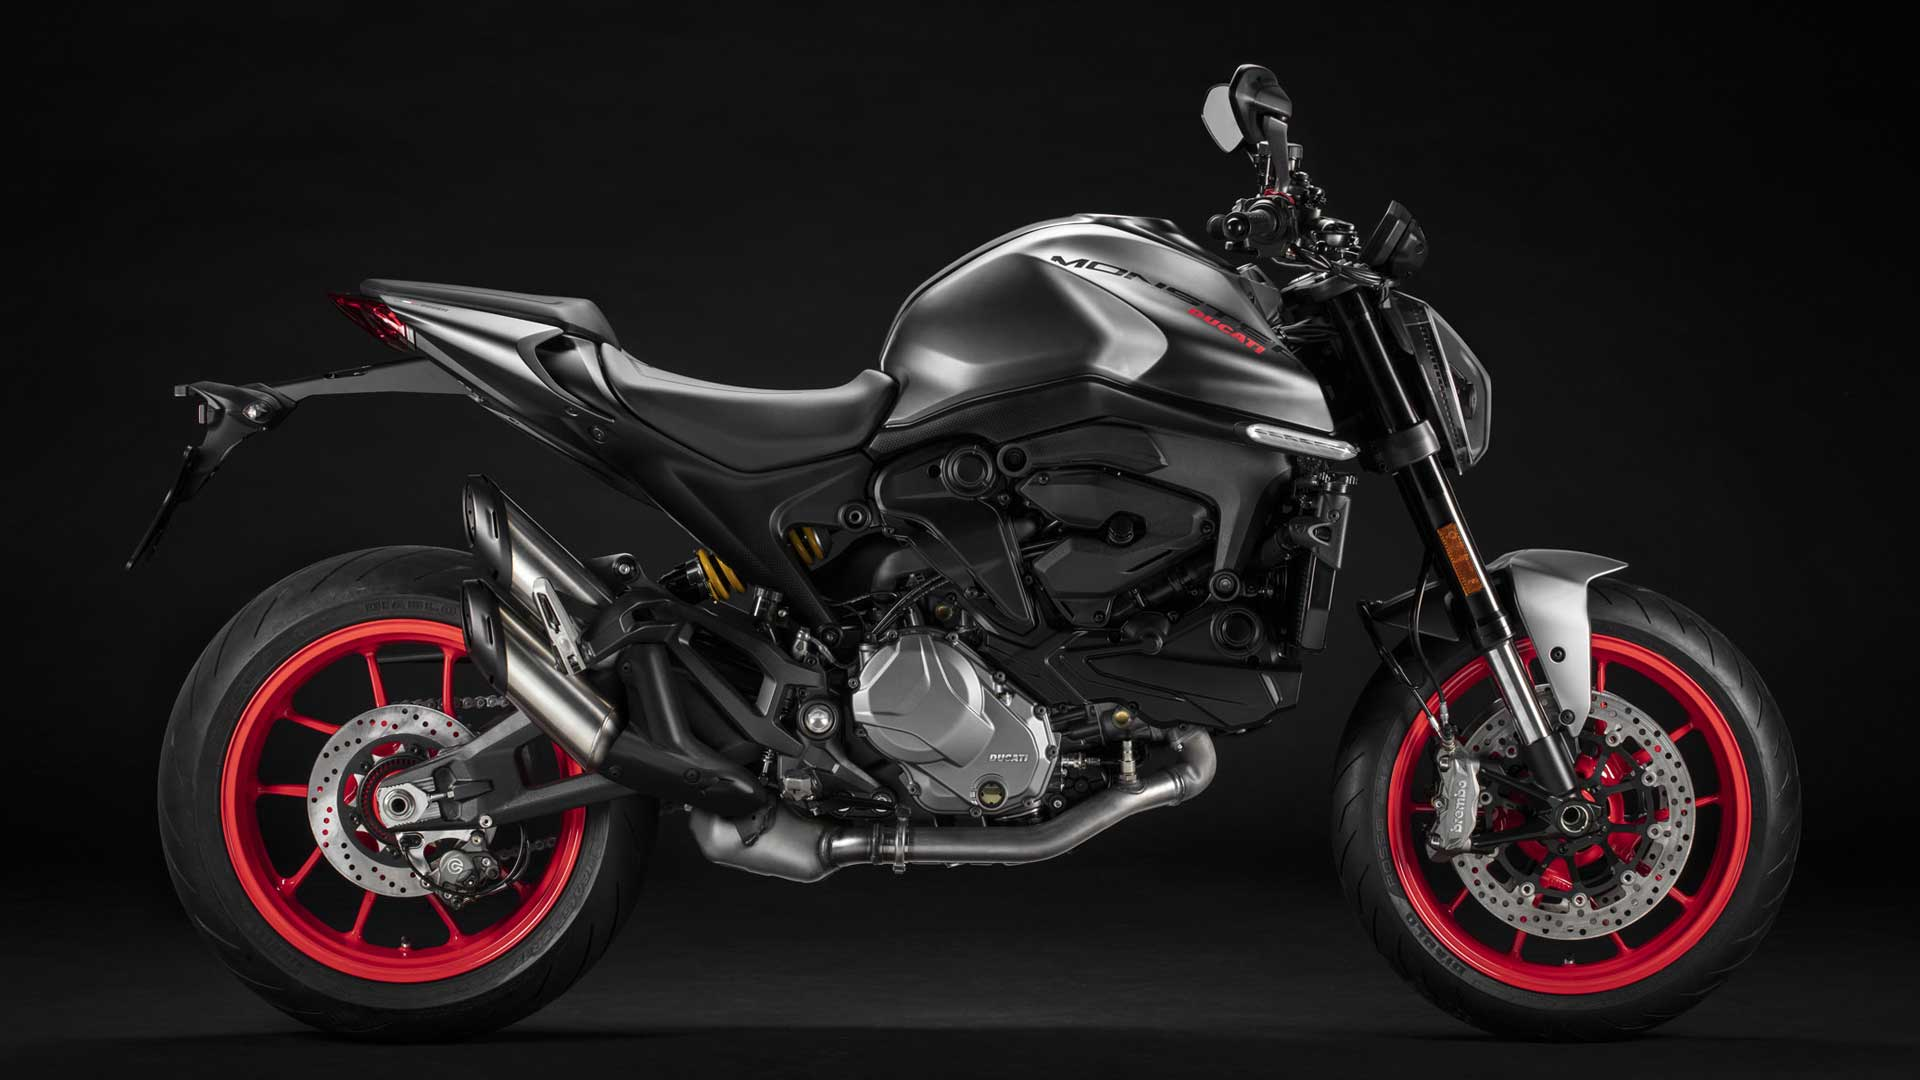 2021 Ducati Monster for sale at Ducati Preston, Lancashire, Scotland